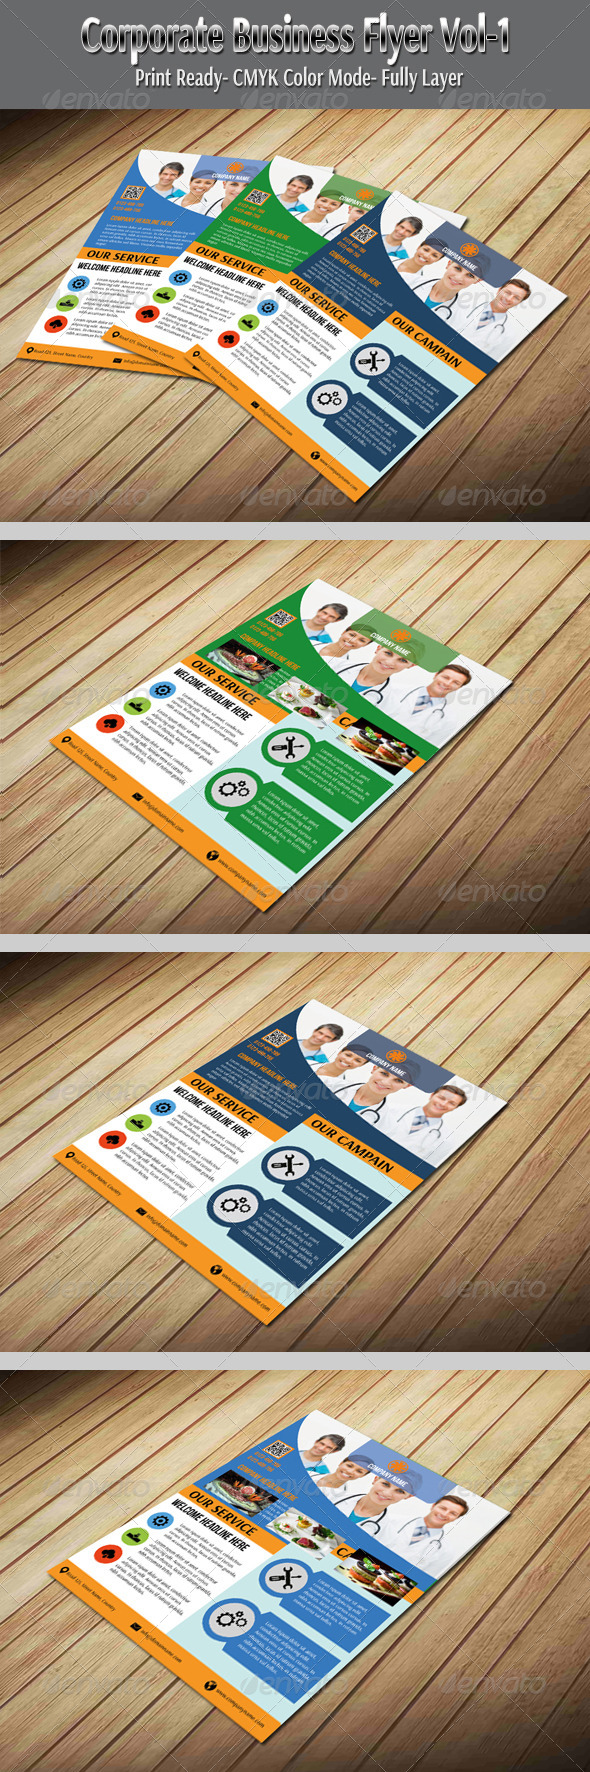 GraphicRiver Corporate Business Flyer Vol-1 5951962